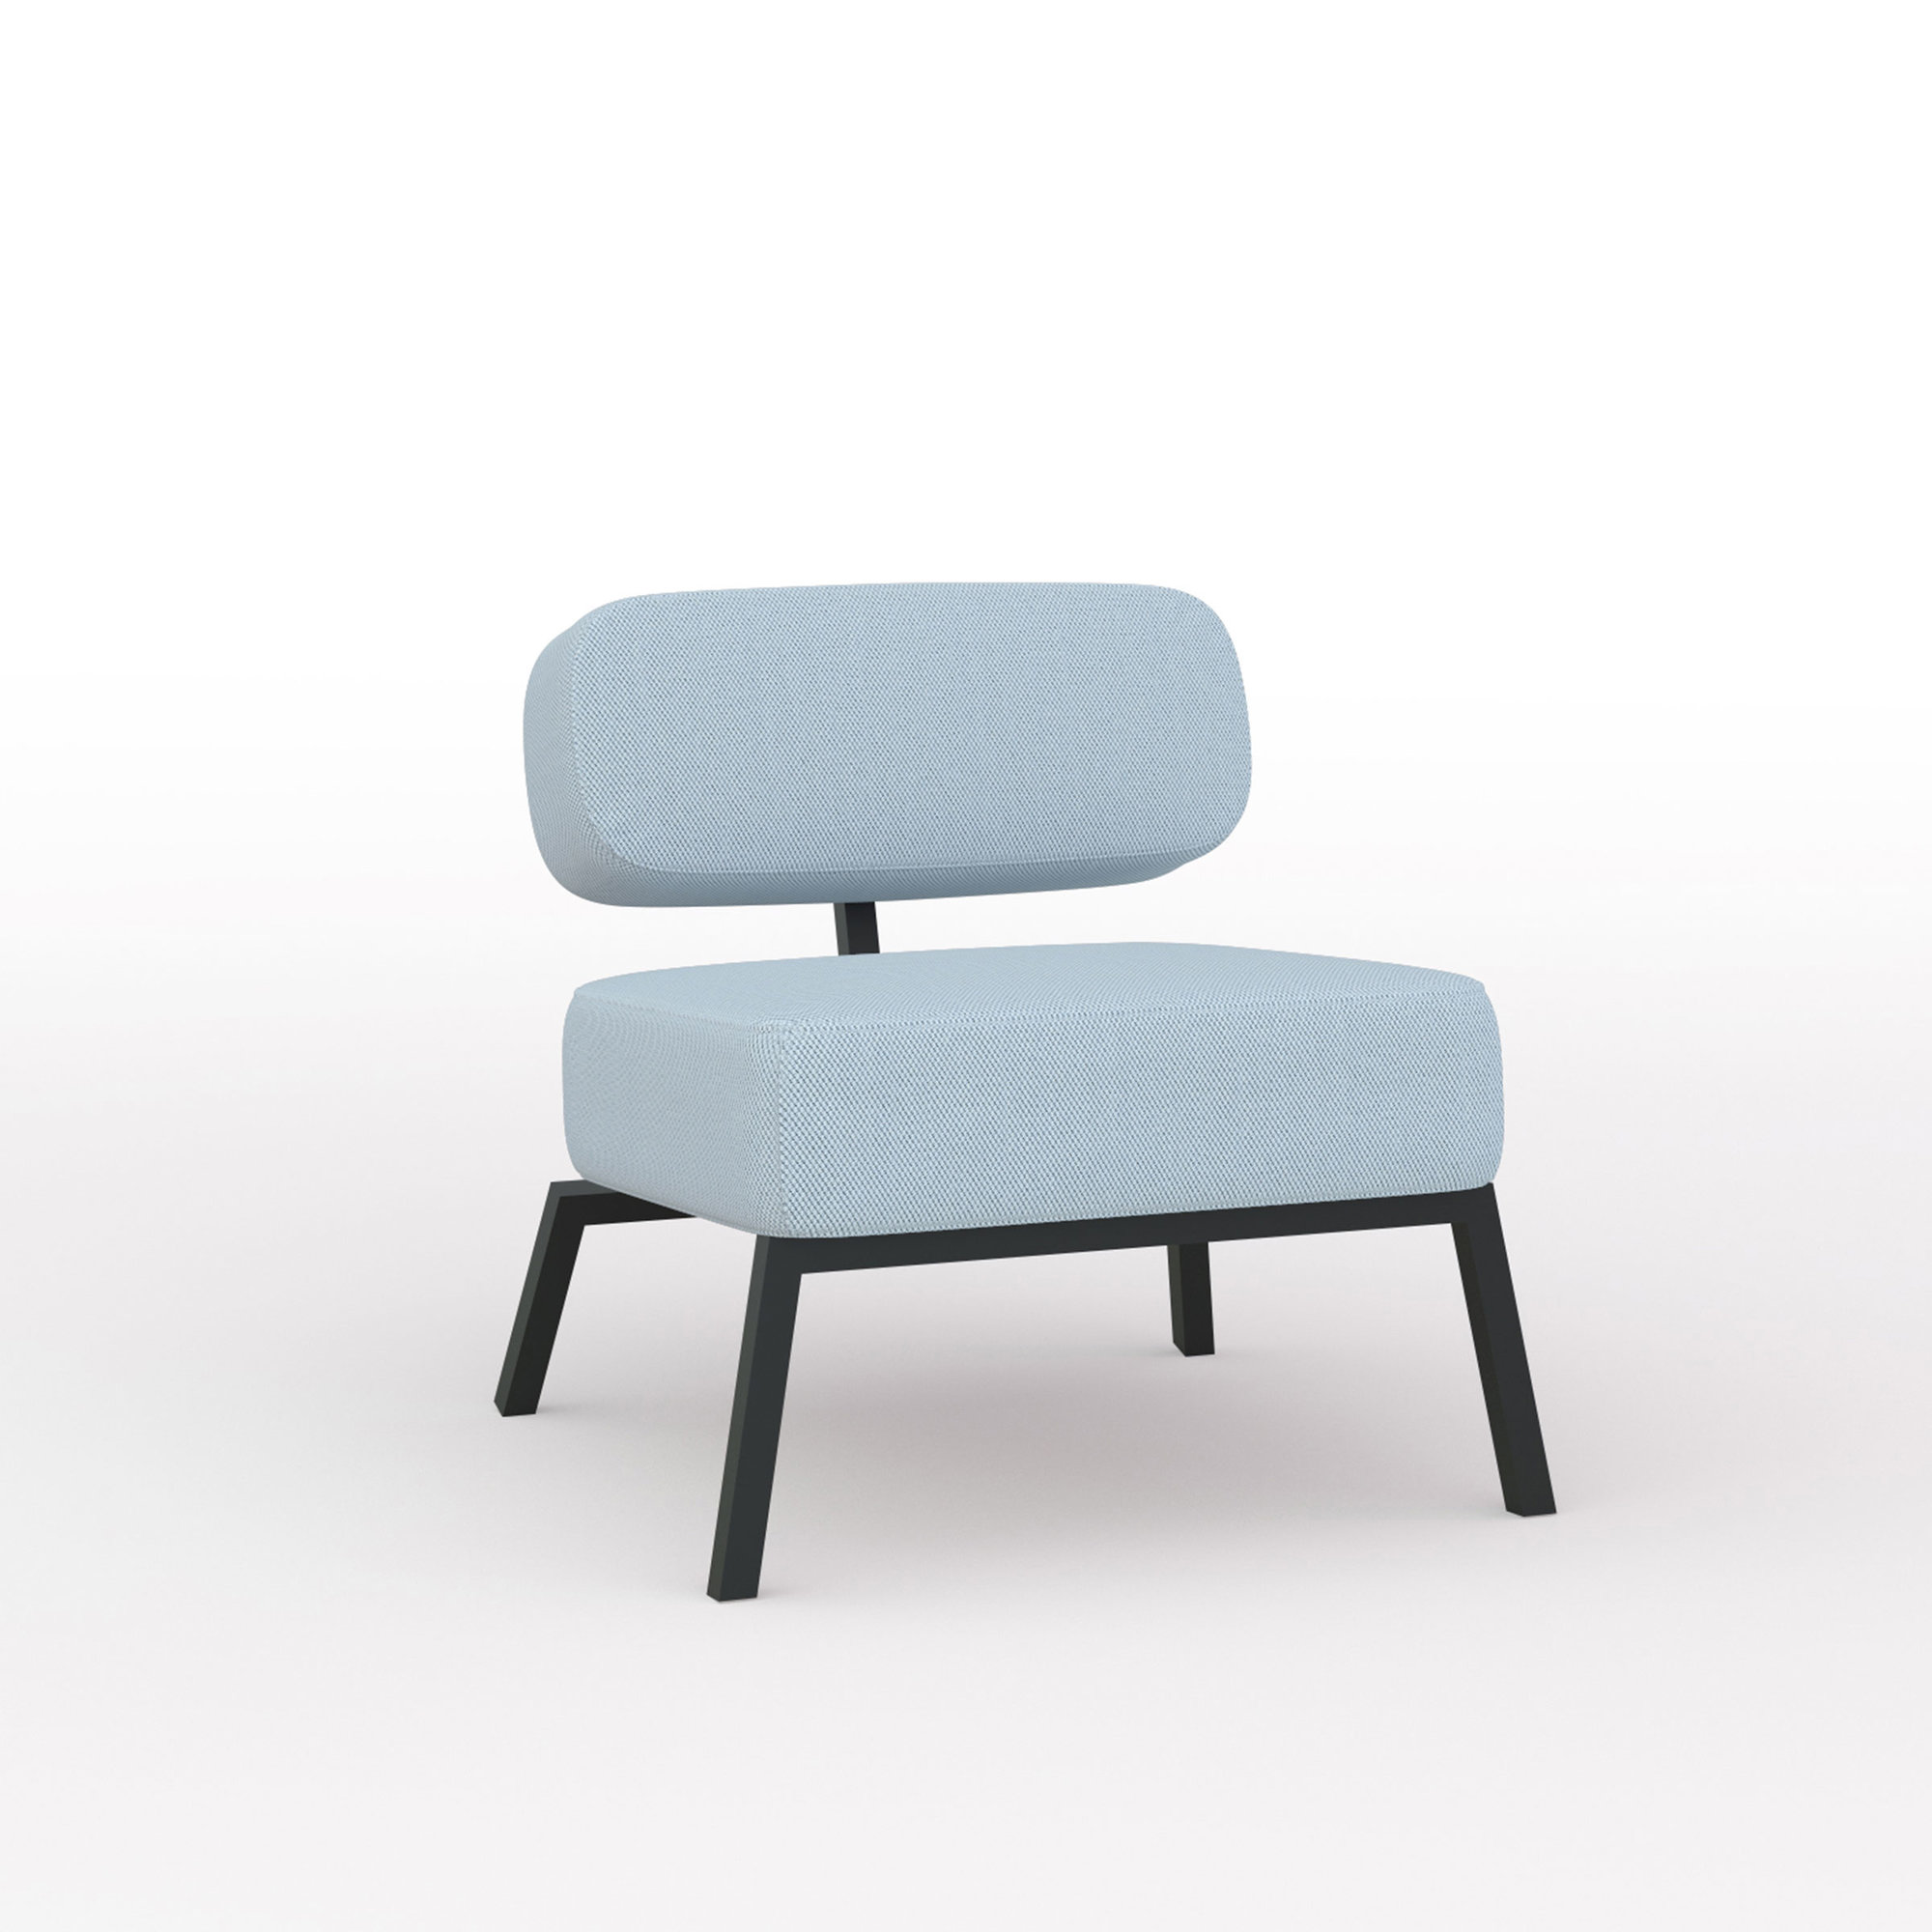 Design zitbank | Ode lounge chair 1 seater without armrest  steelcuttrio3 713 | Studio HENK | Listing_image